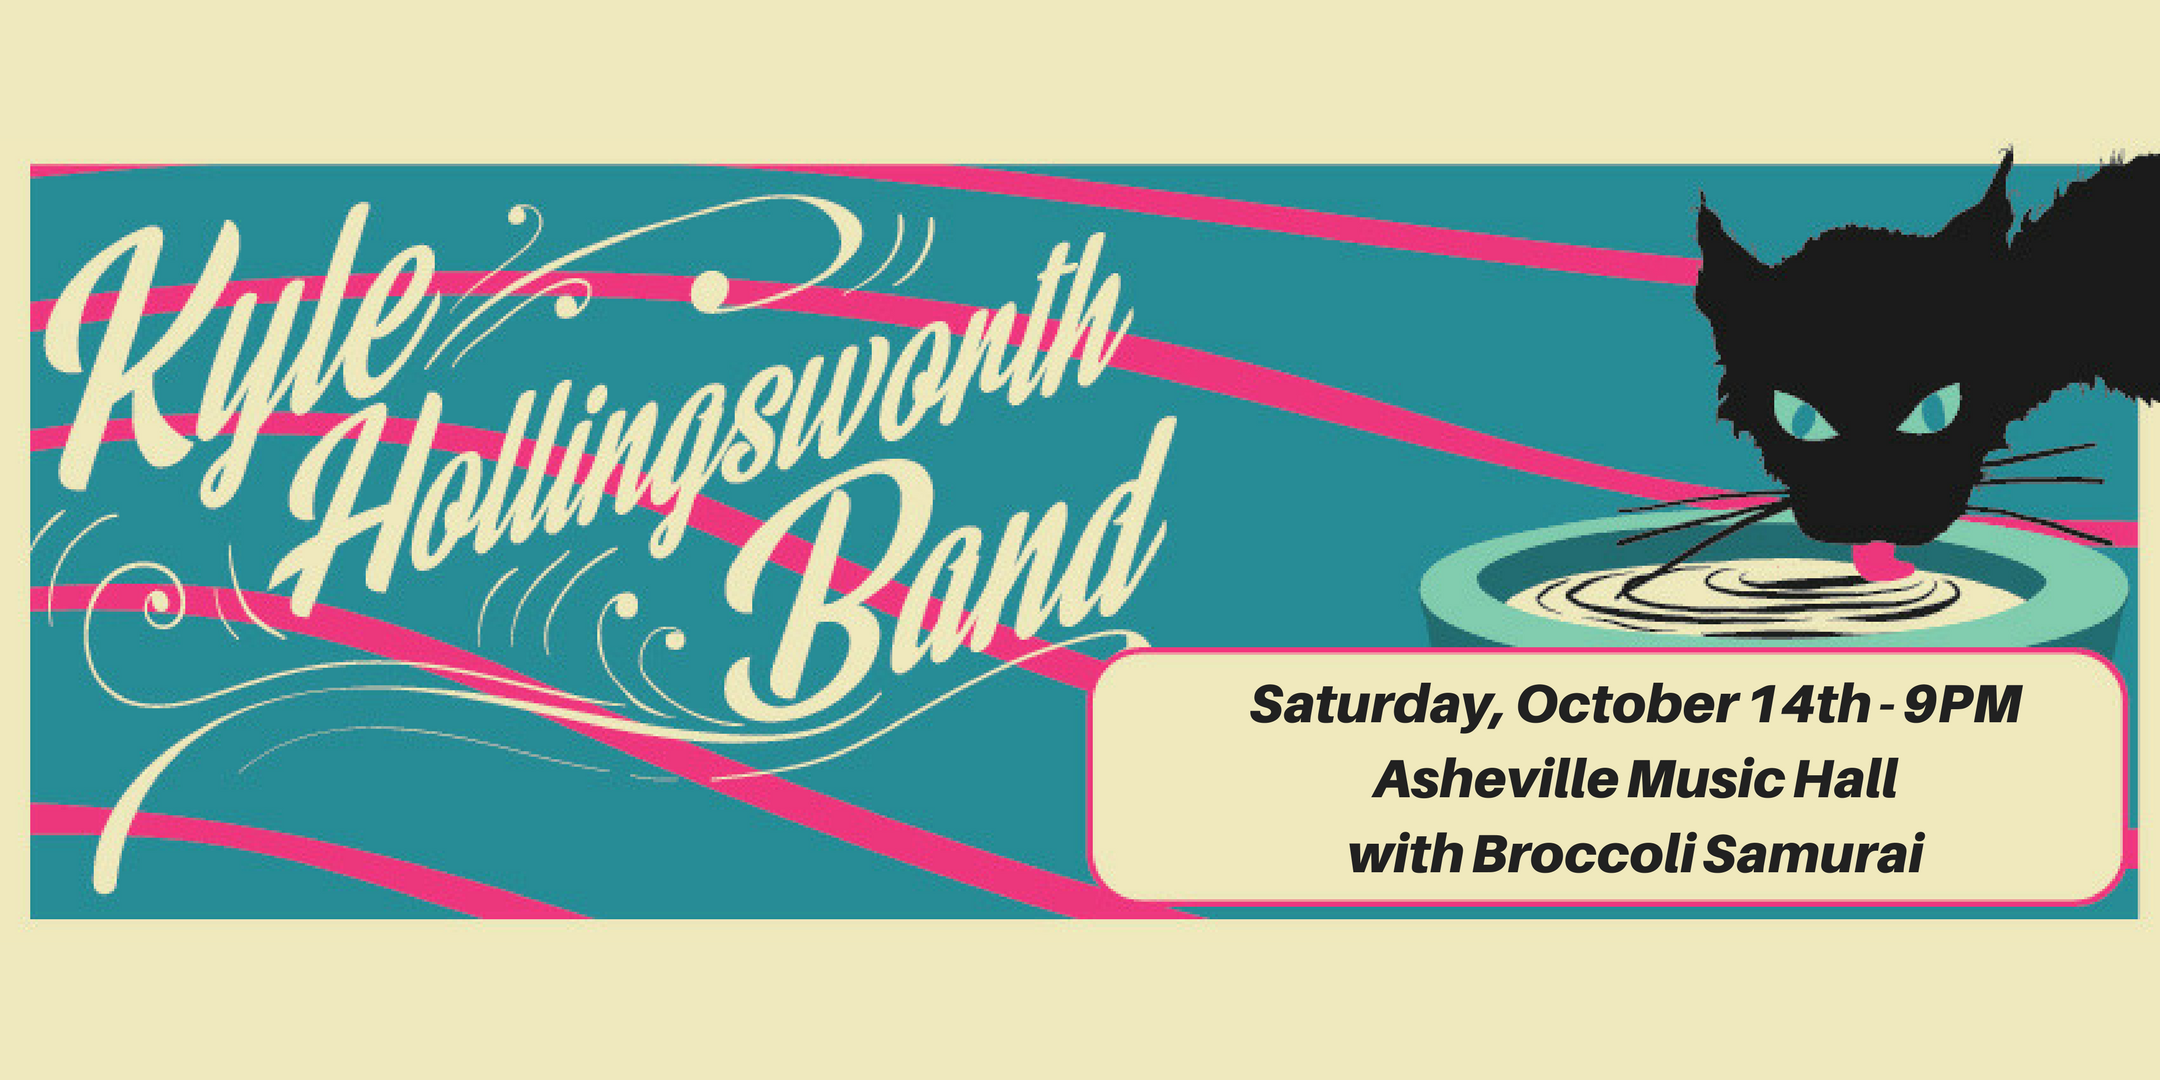 Kyle Hollingsworth Band with support Broccoli Samurai